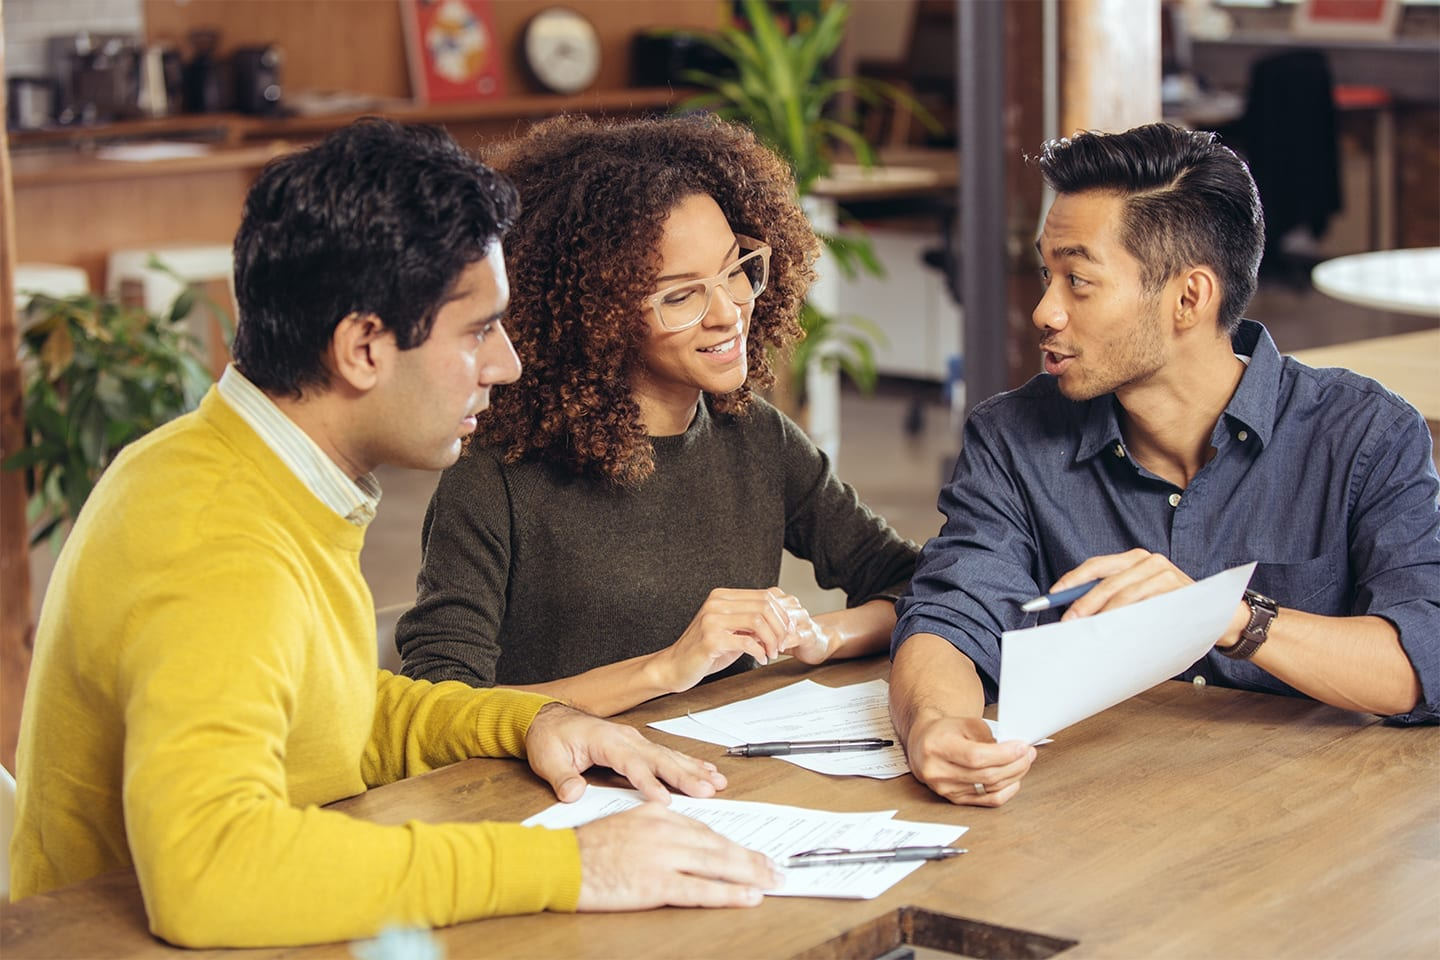 Couple-Meeting-With-Financial-Advisor.RightColumn1